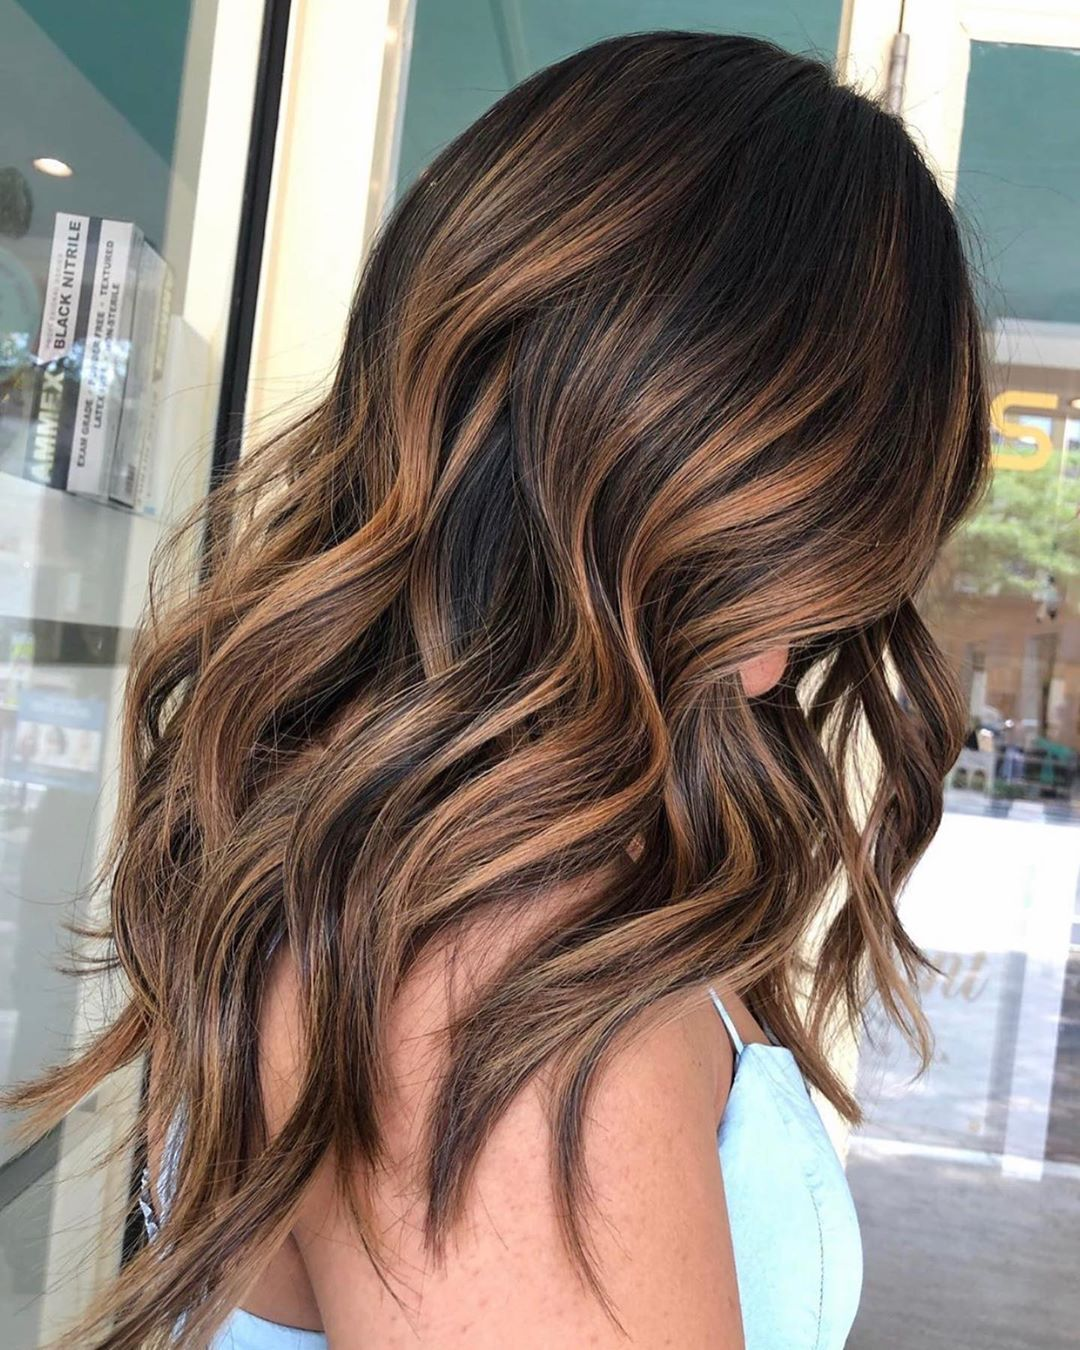 35+ Caramel Hair Color Ideas & Trends: Highlights, Styles and More Caramel hair …